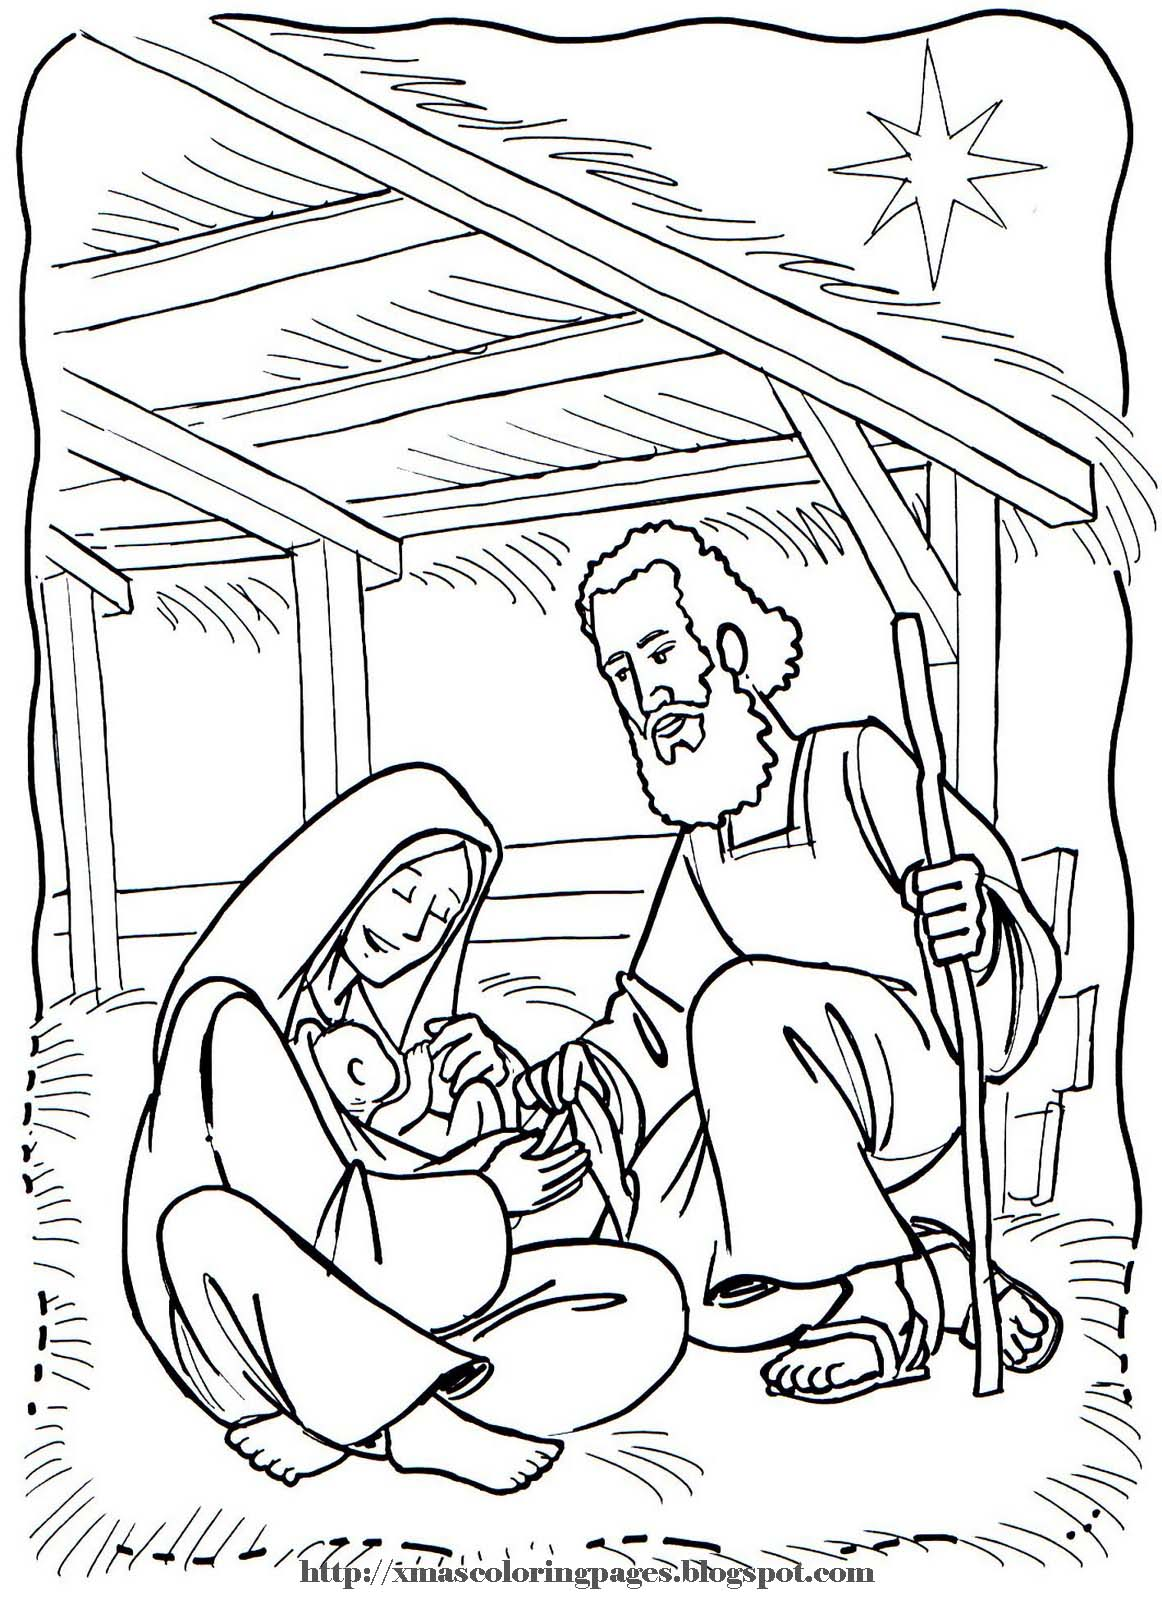 """Search Results for """"Christmas Nativity Coloring Pages"""